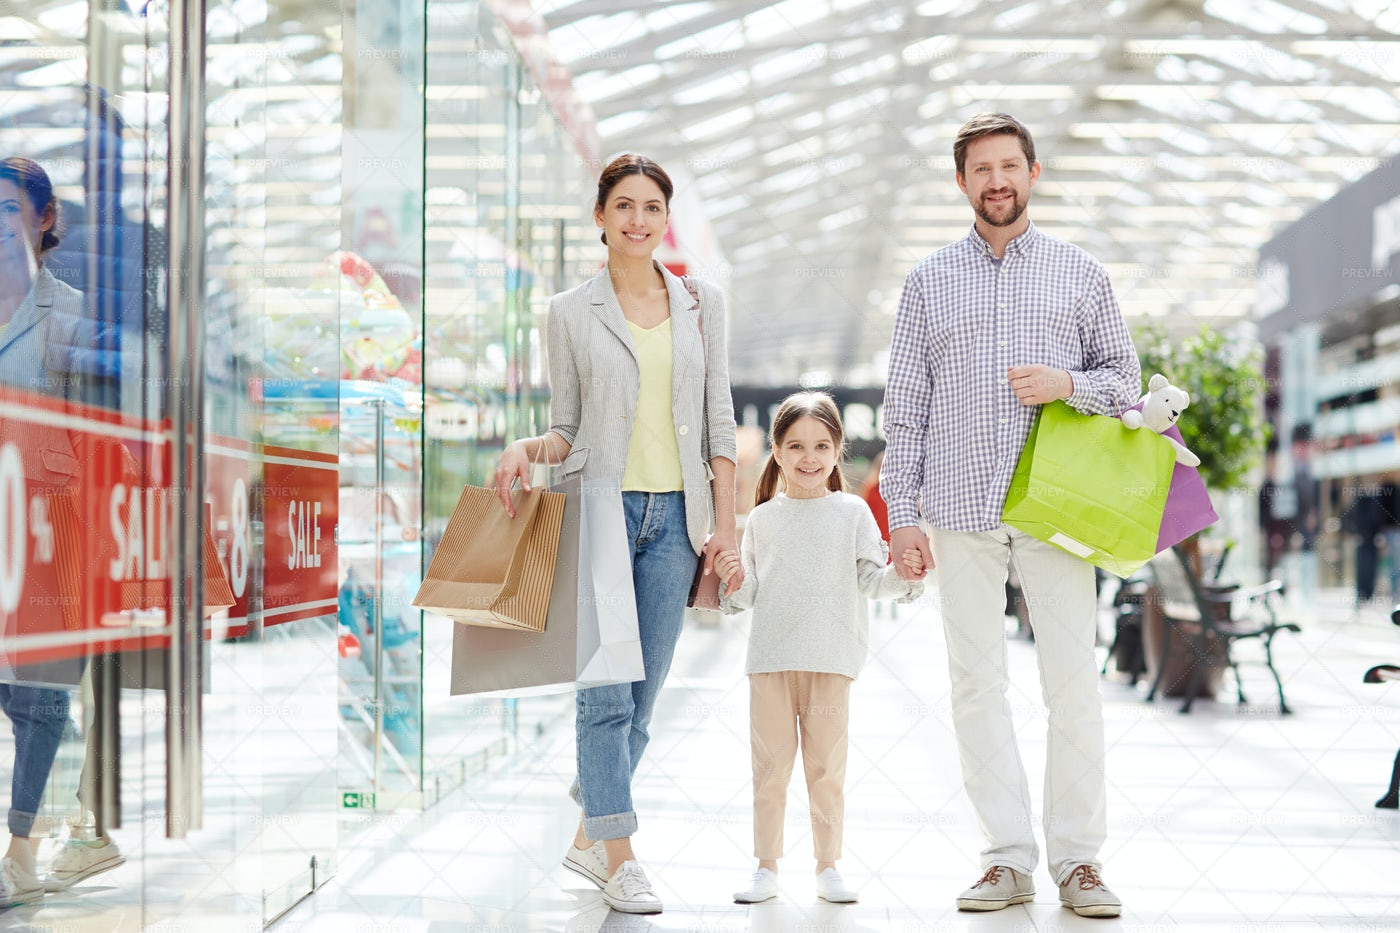 Shopping With Parents: Stock Photos